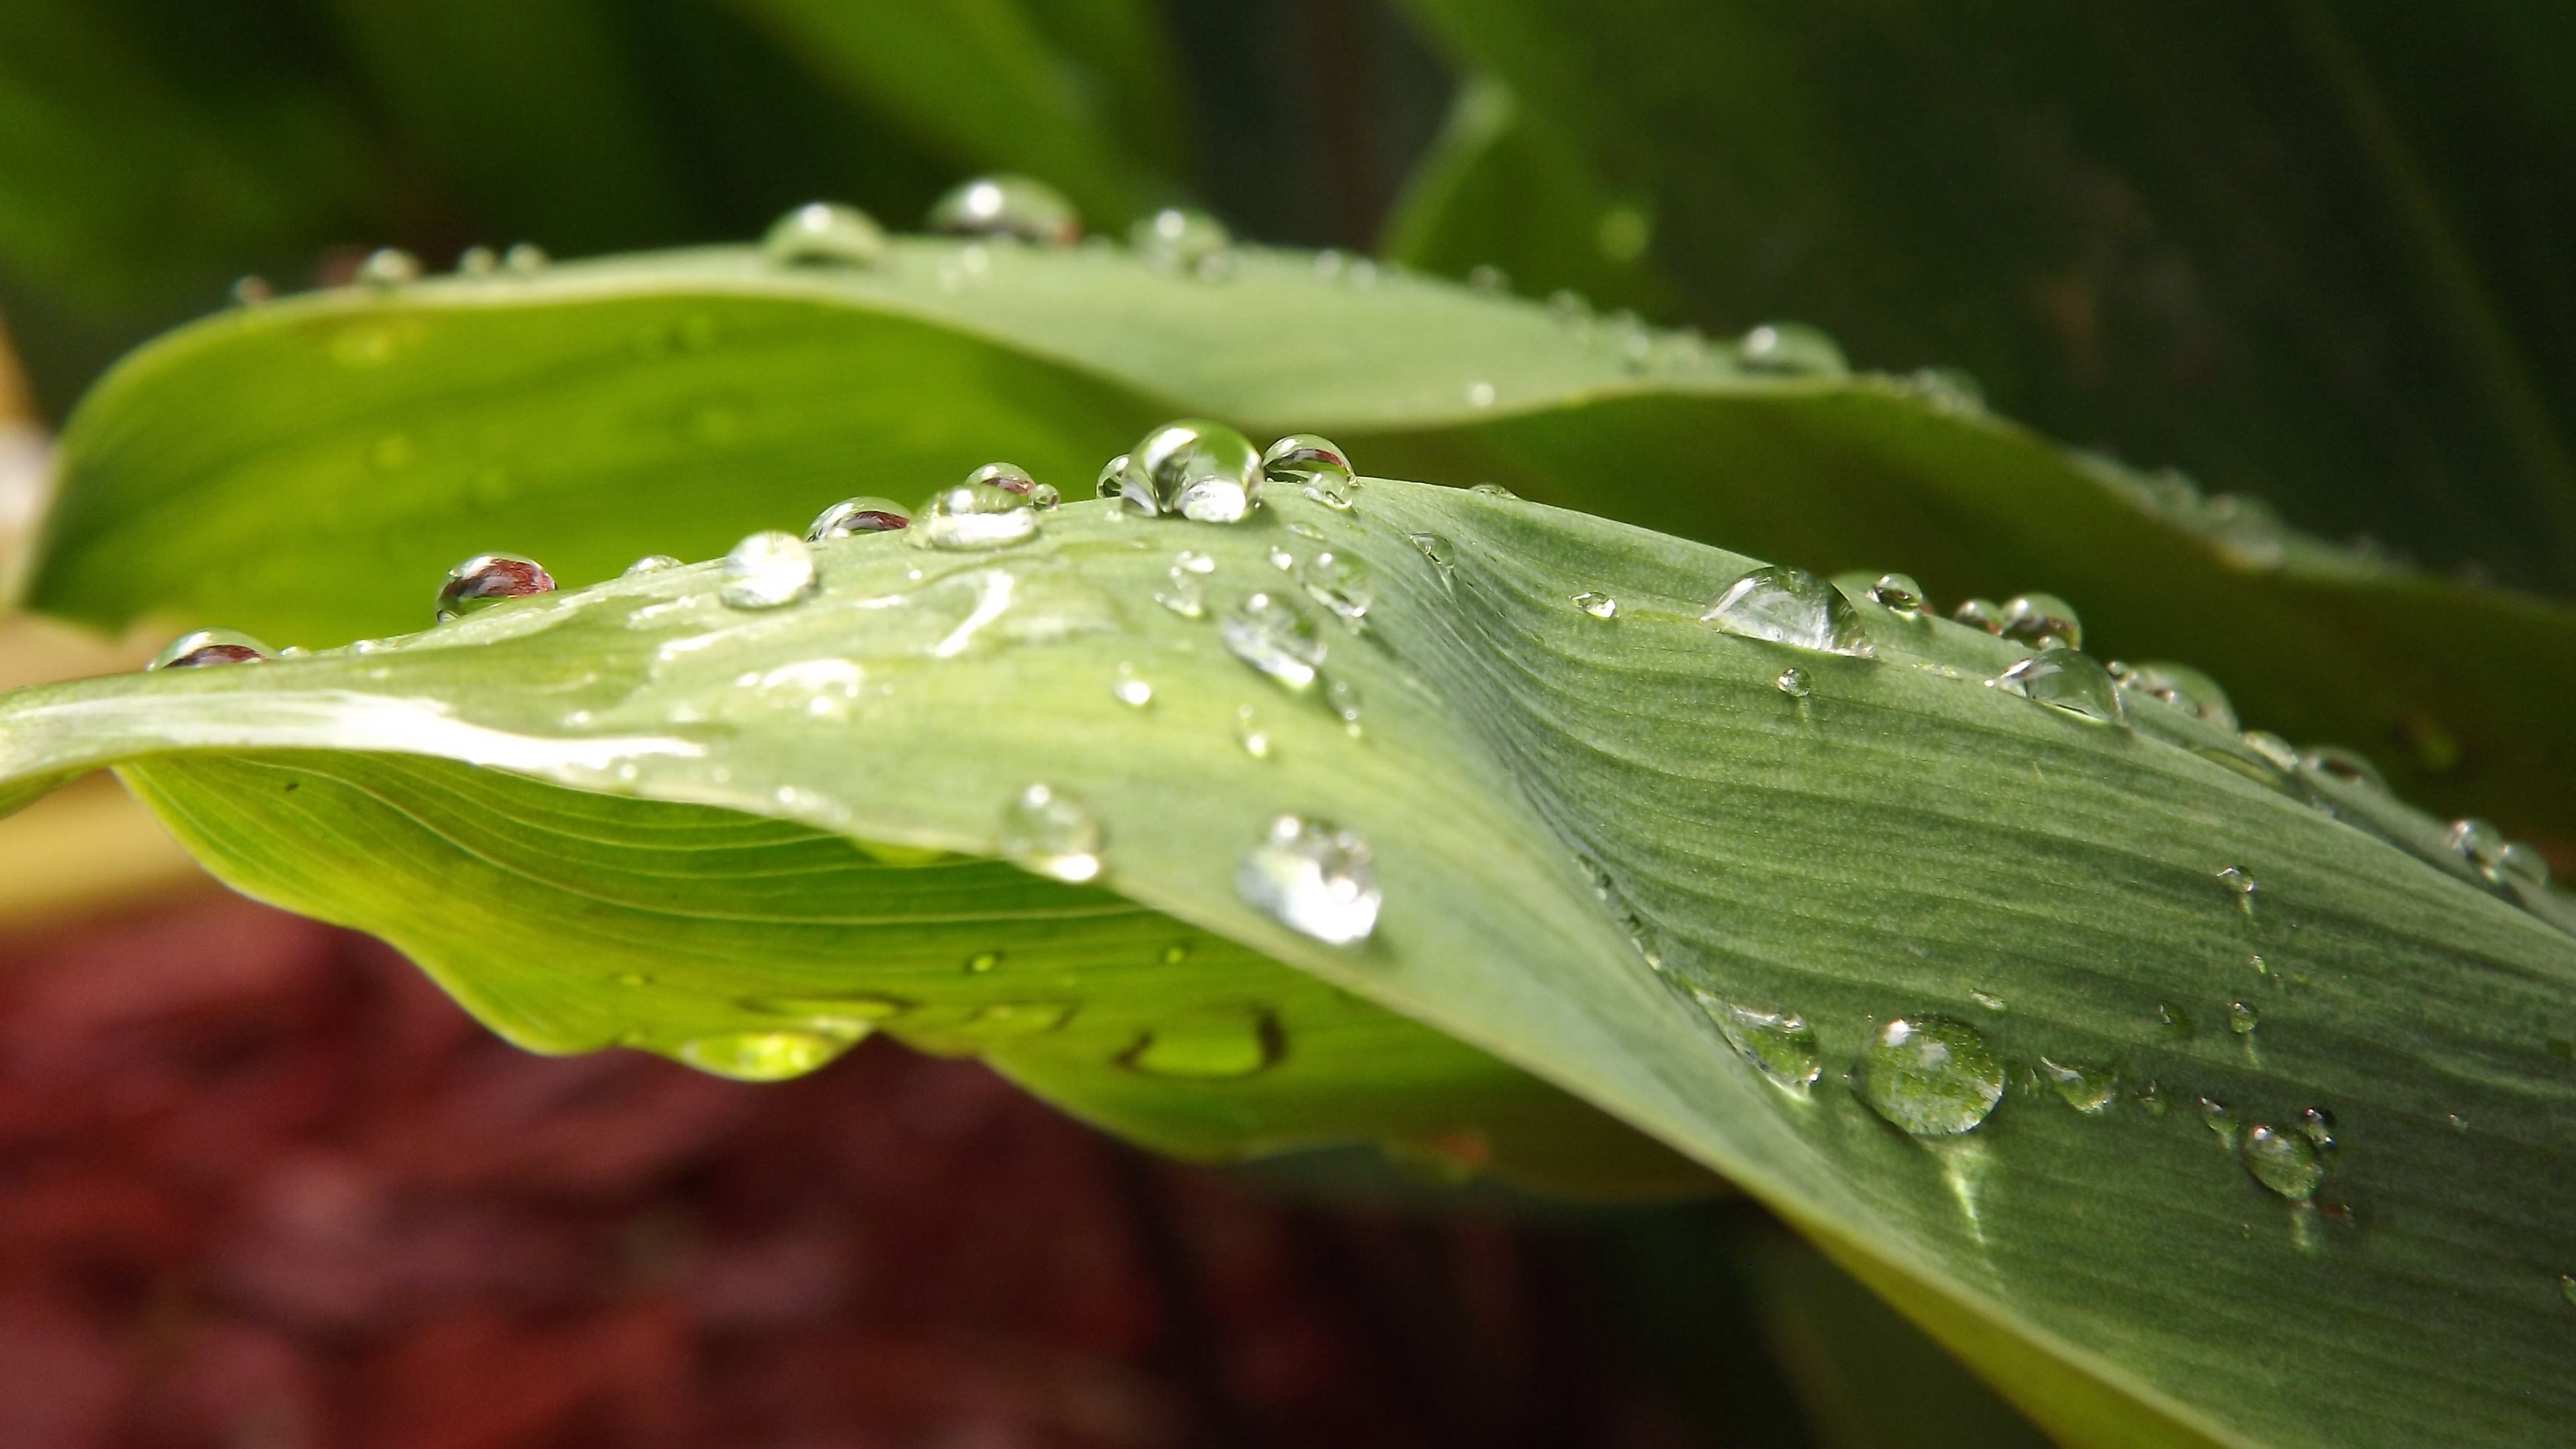 droplets on leaves 4k - photo #1